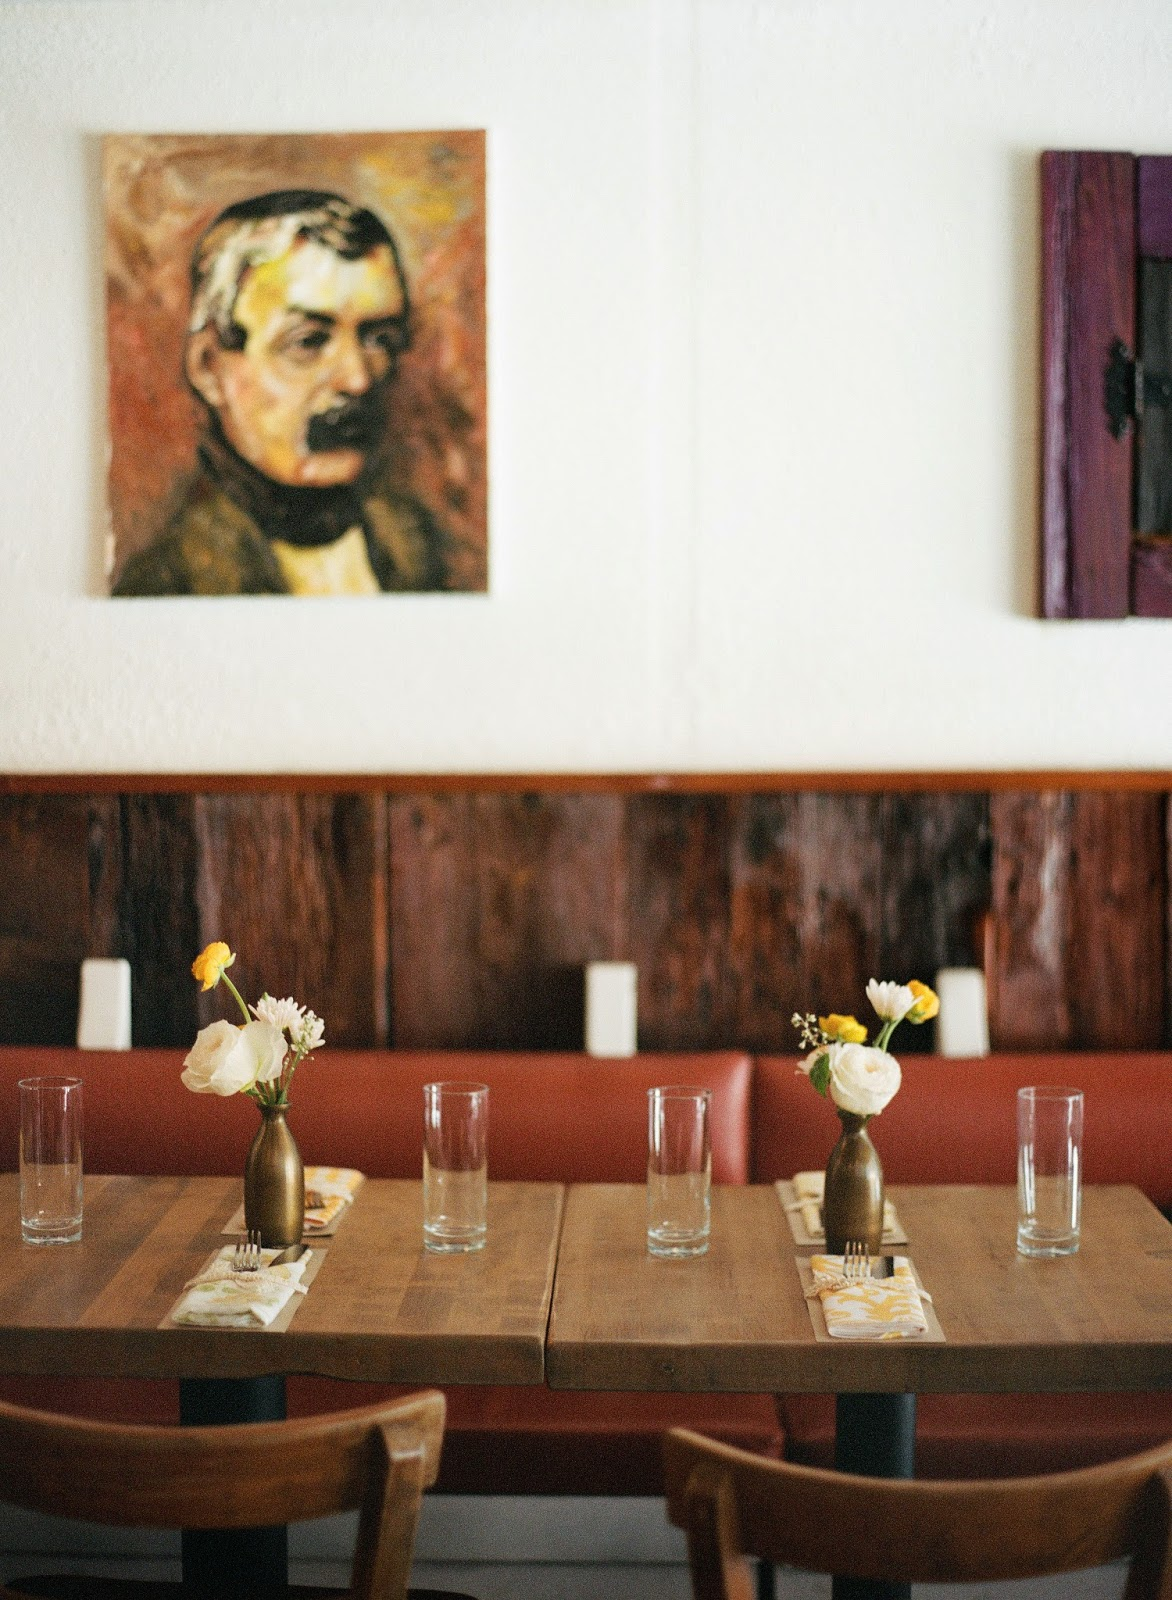 yellow and white spring wedding flowers in antique brass vases with vintage portraits at an intimate brooklyn, new york restaurant wedding dinner